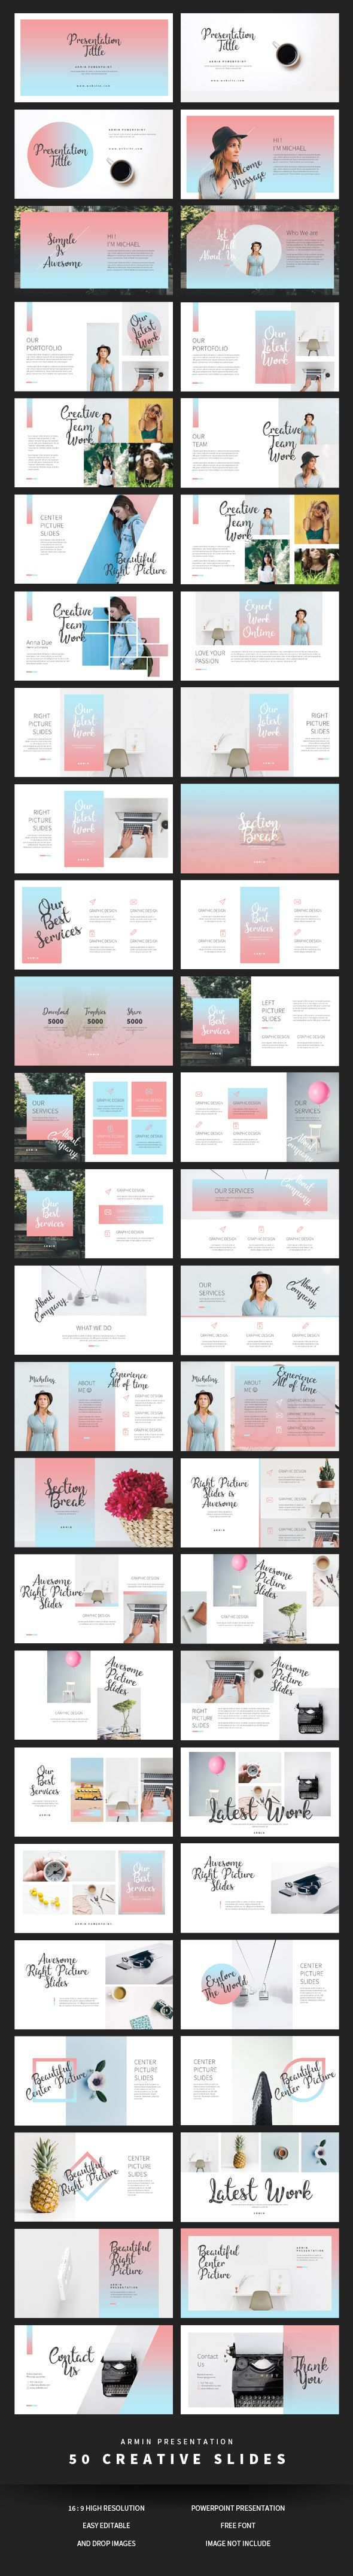 Armin Powerpoint - #Creative #PowerPoint Templates Download here: https://graphicriver.net/item/armin-powerpoint/20349977?ref=alena994